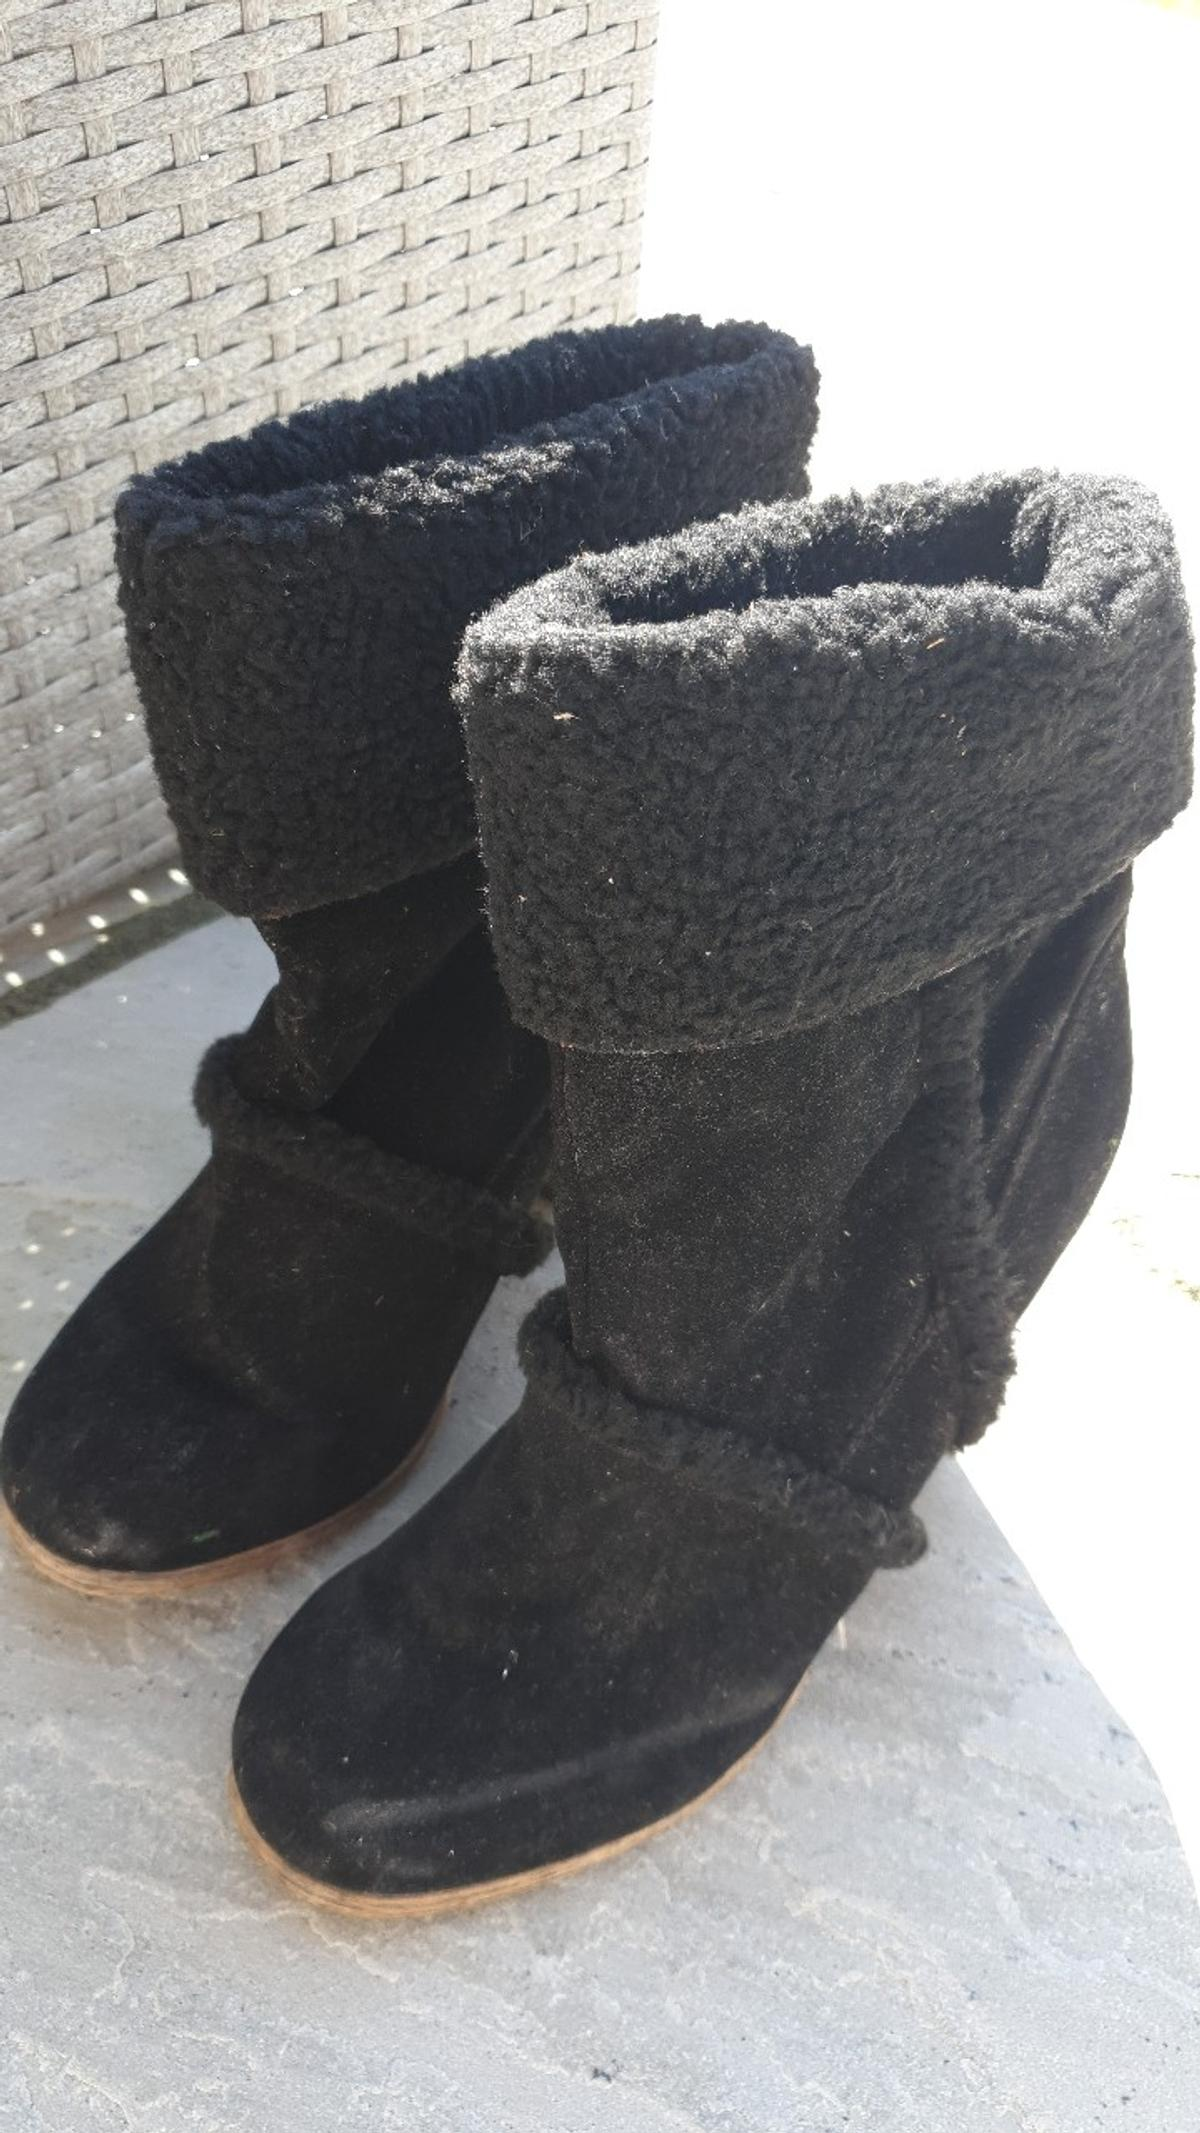 ladies boots size 6.5 uk in good condition comes from pet/smoke free home.